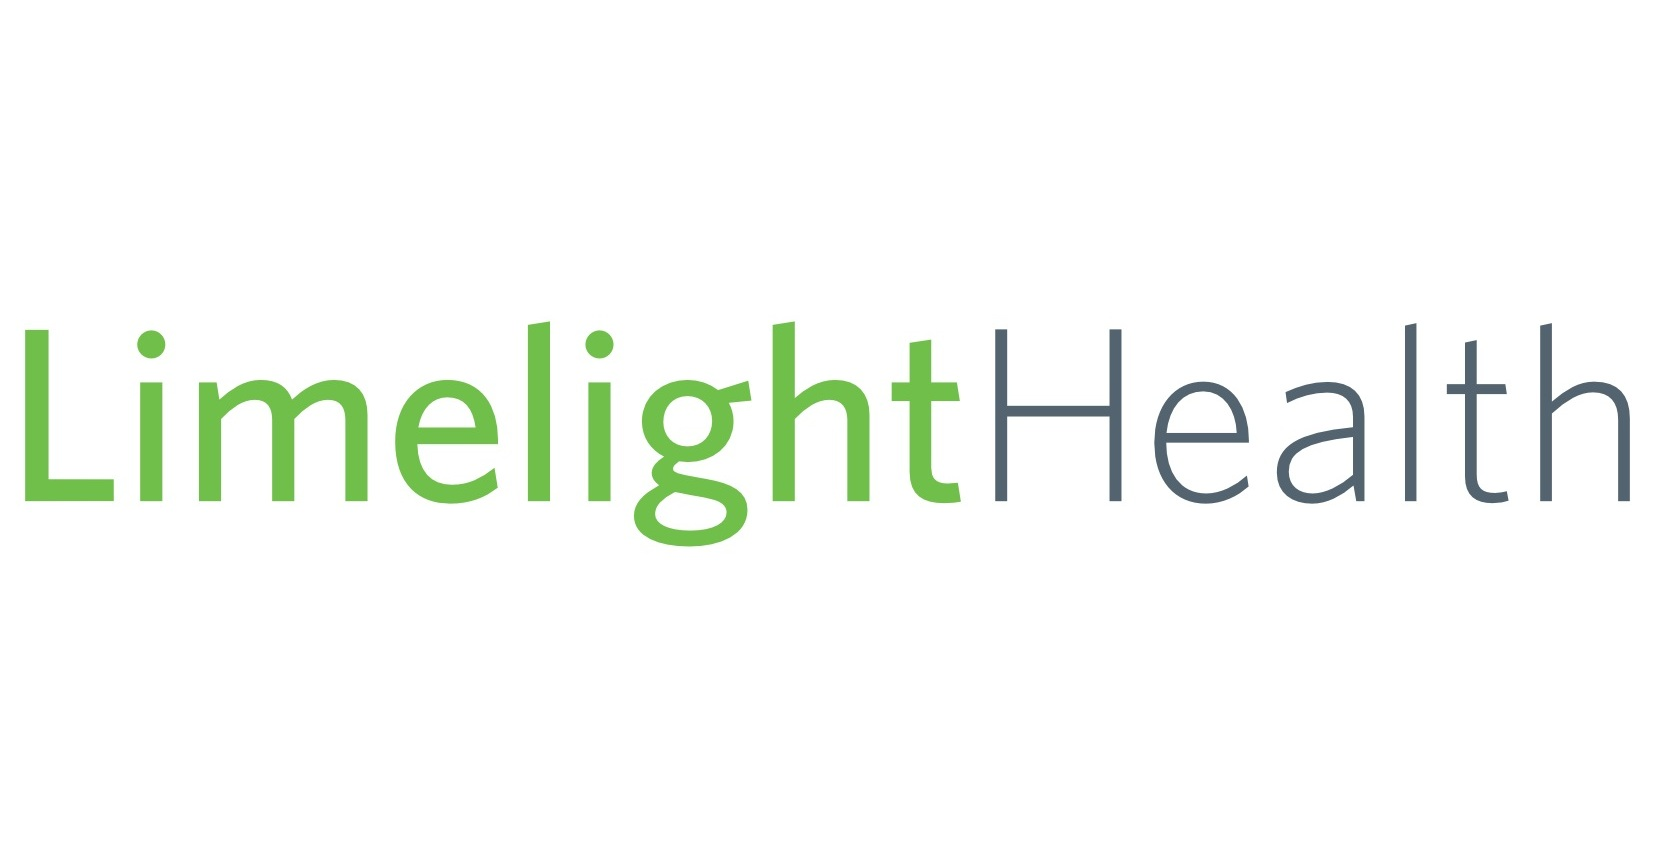 SAN FRANCISCO, March 23, 2017 /PRNewswire/ -- Limelight Health is pleased to announce that it has been selected by...